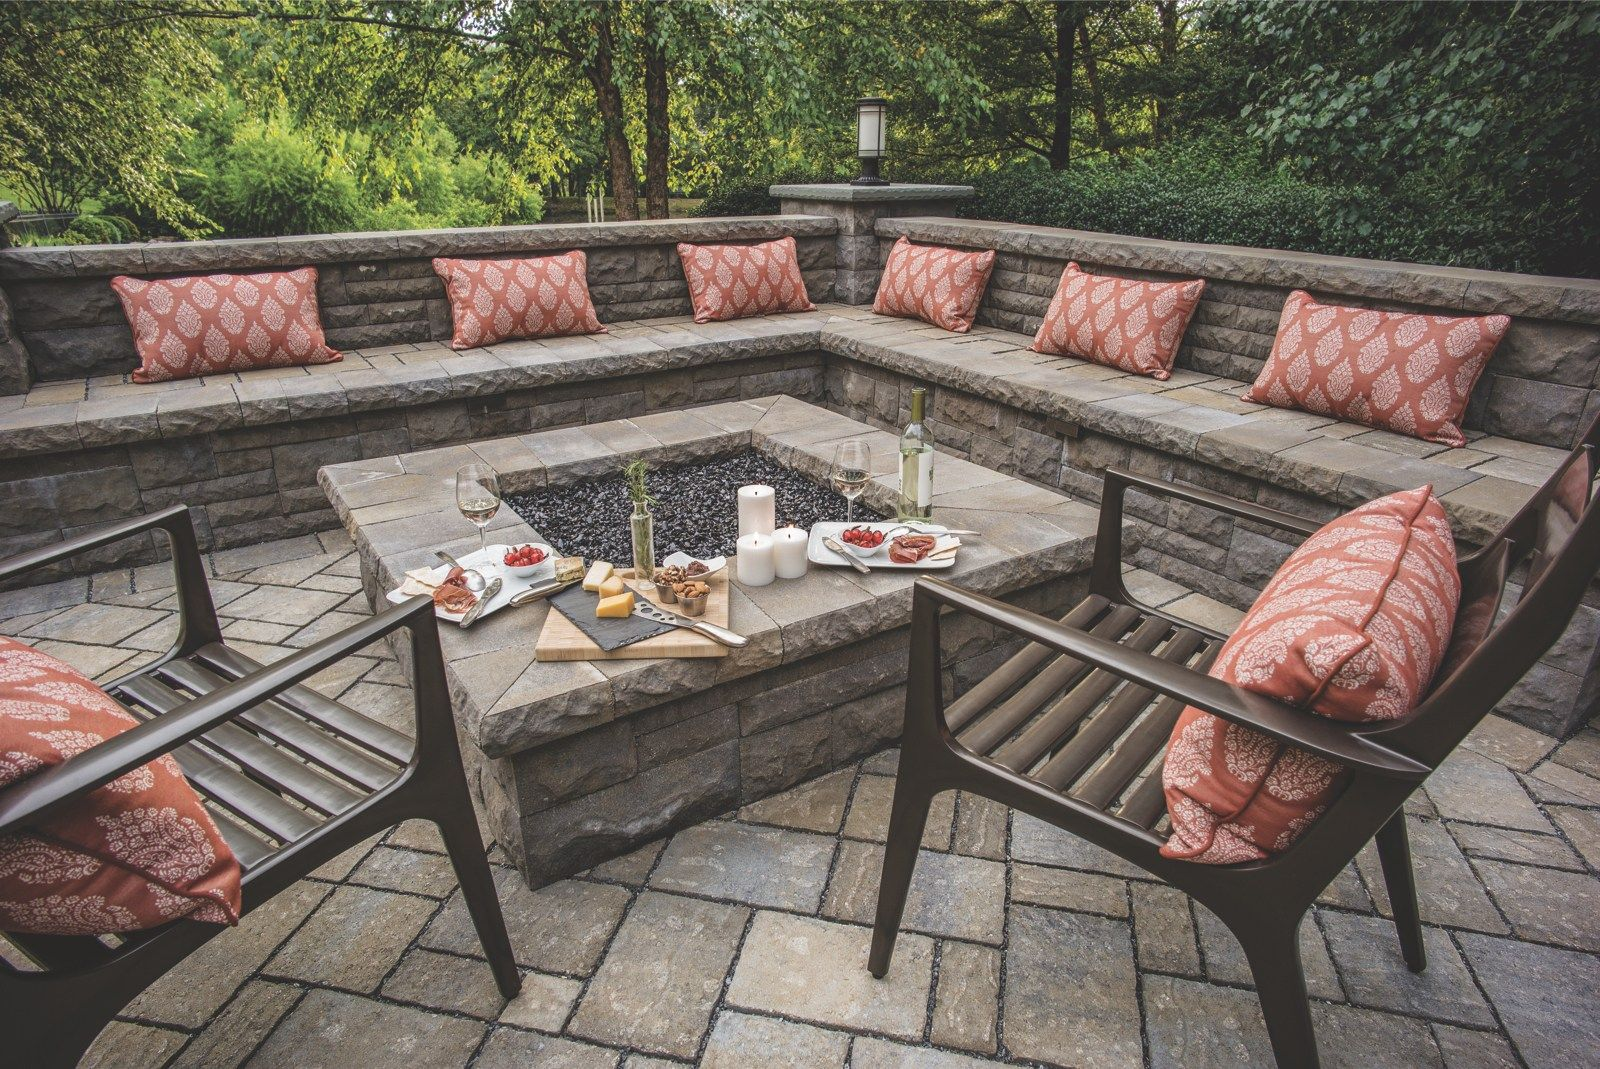 10 Dimensional Fire Pit Patio Ideas That Add Flare To Outdoor